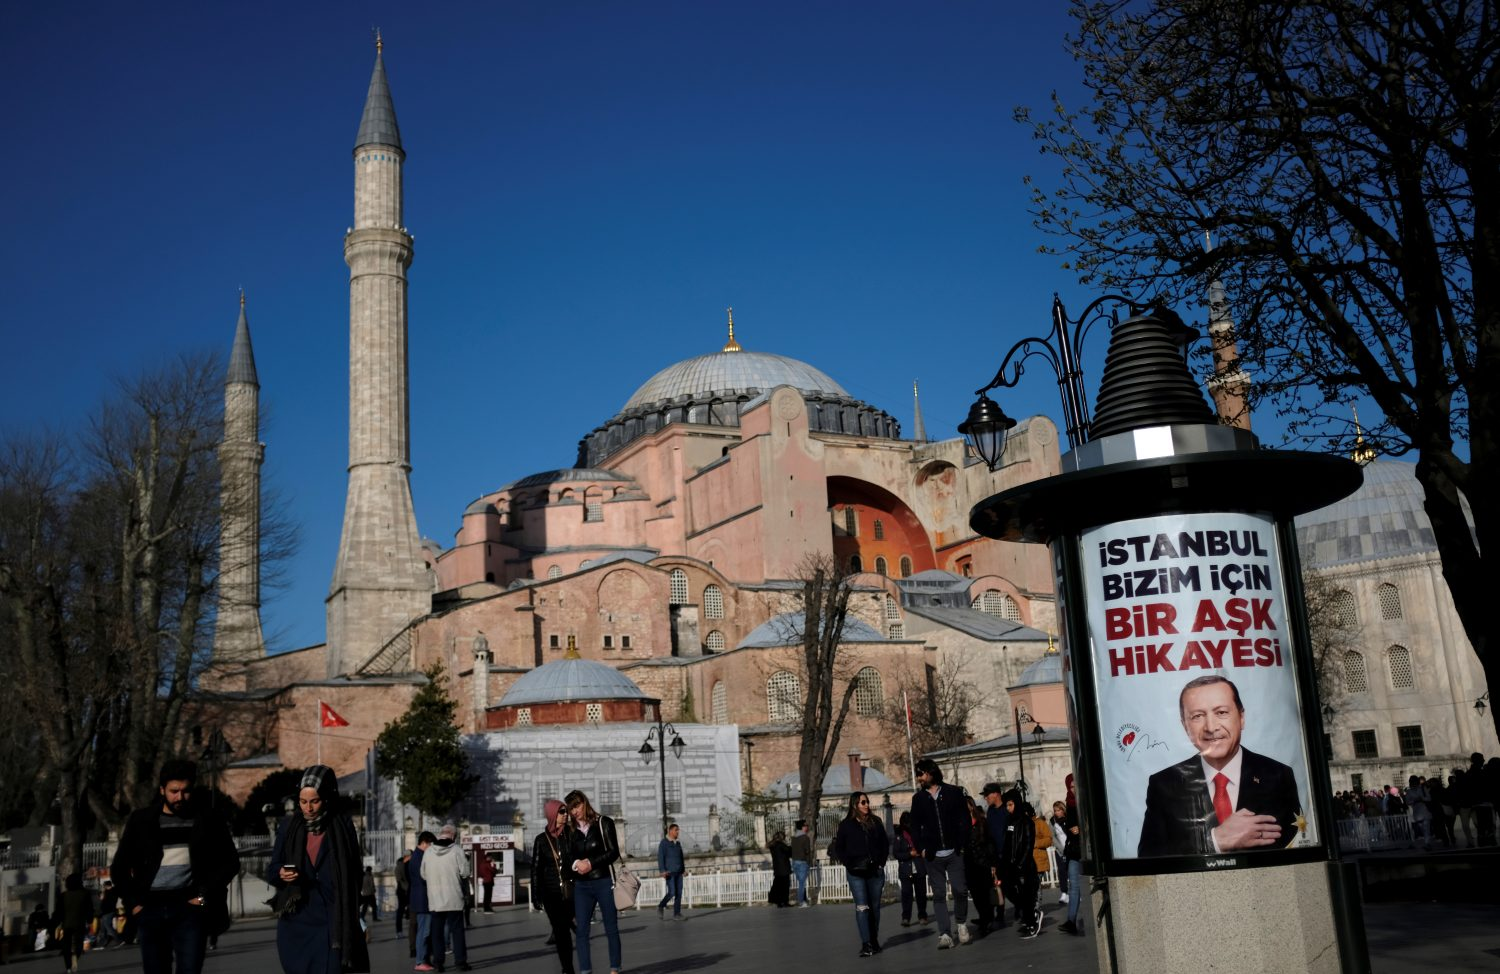 An election banner of Turkish President Tayyip Erdogan, with the Byzantine-era monument of Hagia Sophia in the background, is pictured in Istanbul, Turkey, March 28, 2019. REUTERS/Murad Sezer